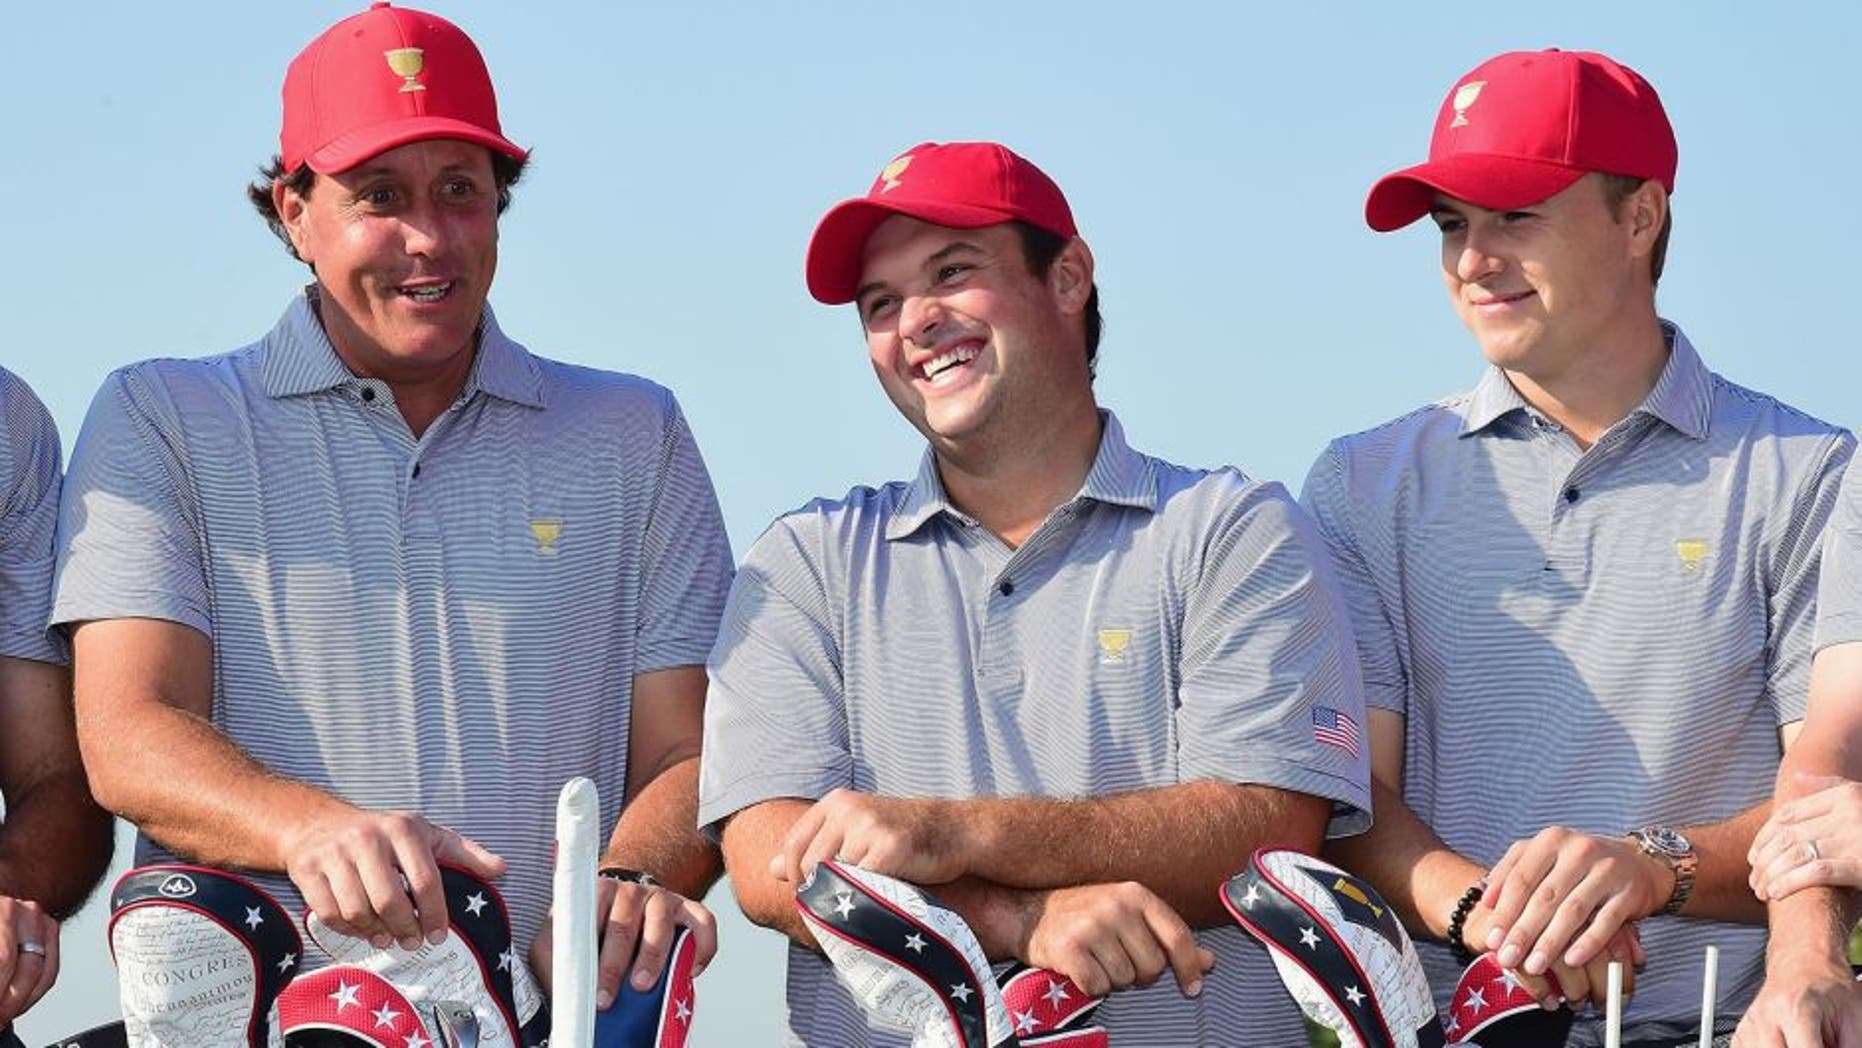 INCHEON CITY, SOUTH KOREA - OCTOBER 06: (L-R) Phil Mickelson, Patrick Reed and Jordan Spieth of the United States team pose with the team during a photocall on the practice ground prior to the start of The Presidents Cup at the Jack Nicklaus Golf Club on October 6, 2015 in Incheon City, South Korea. (Photo by Harry How/Getty Images)